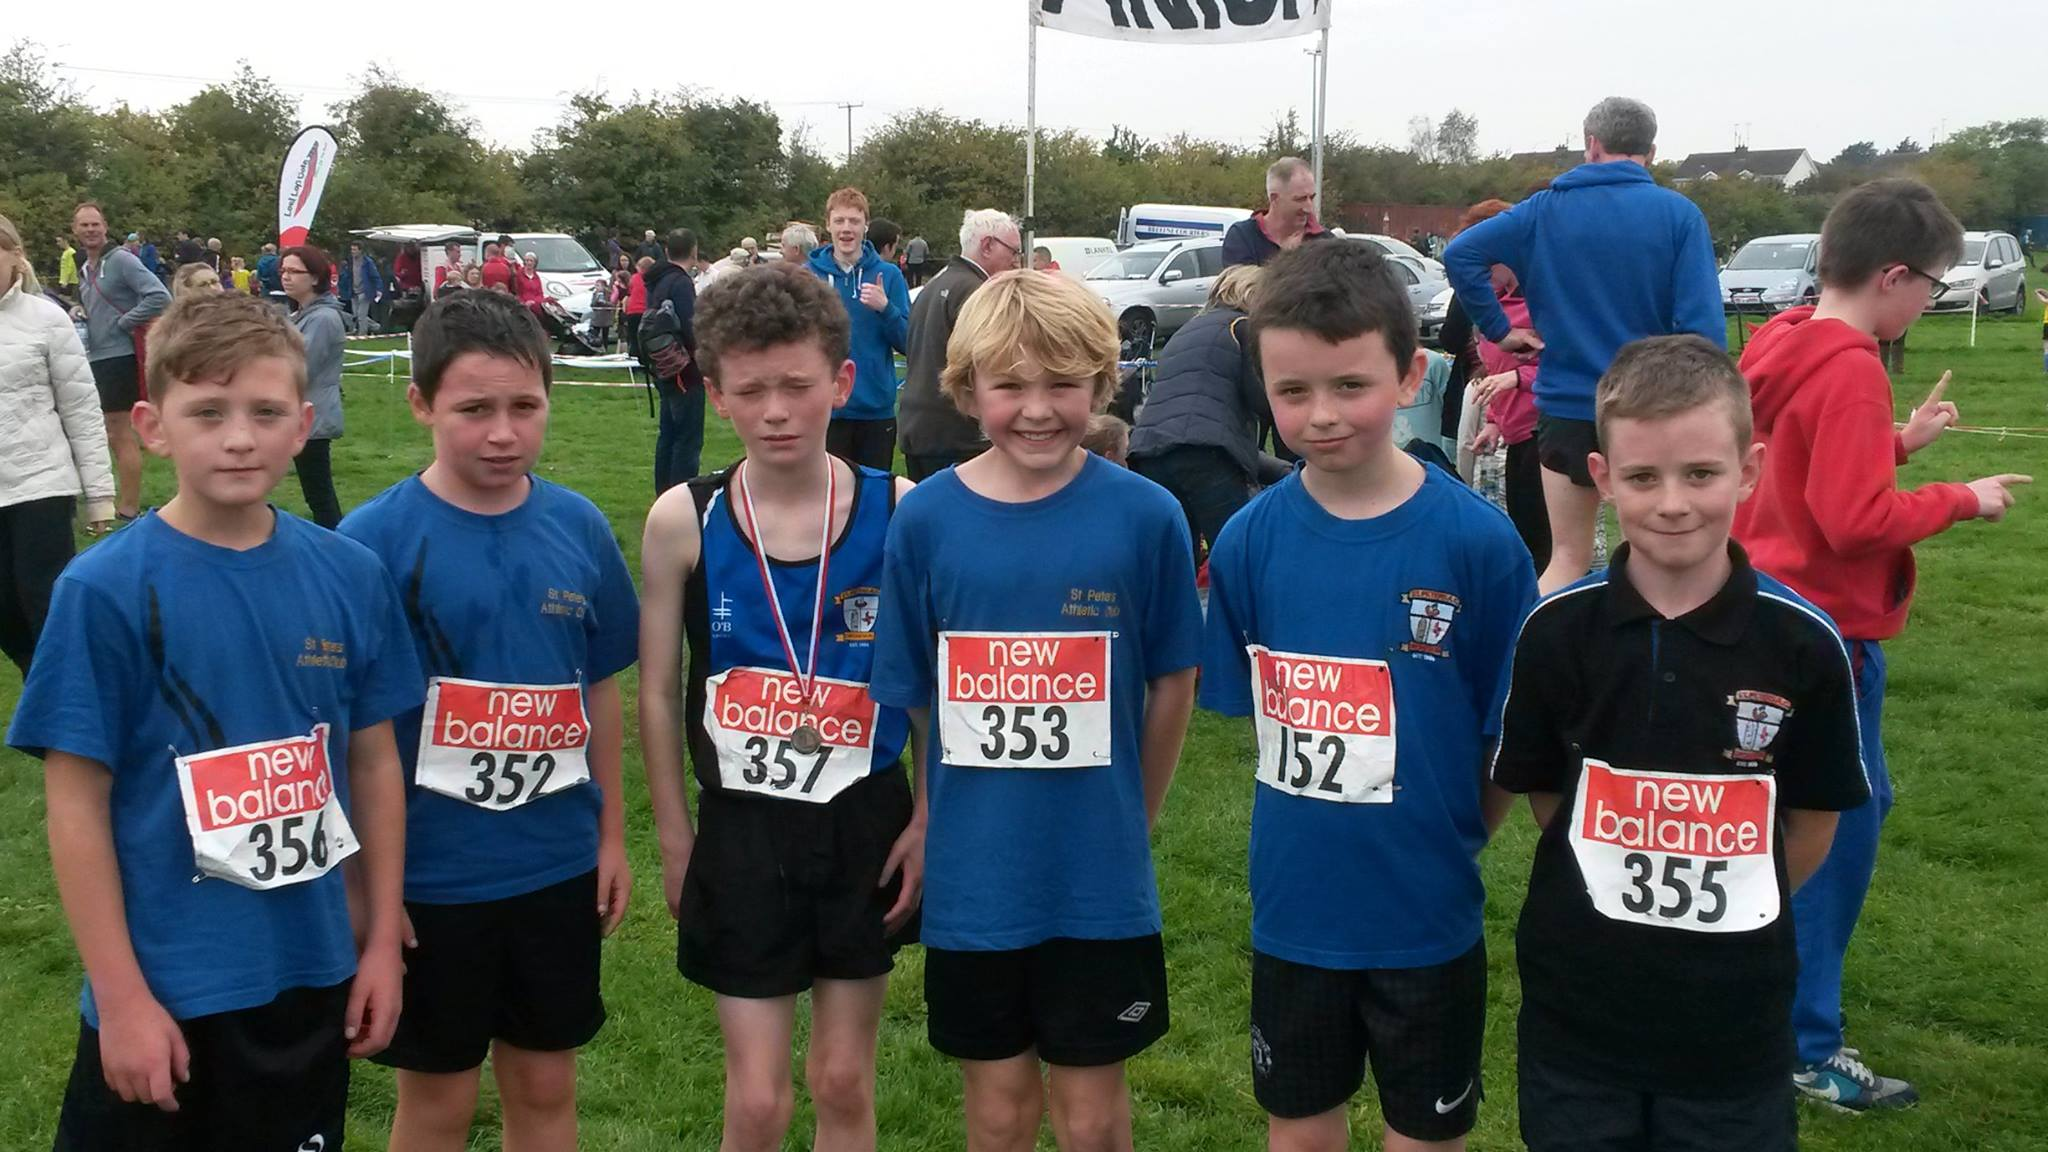 U11 Boys' team at Louth Cross Country Championships (Drogheda, October 2015)